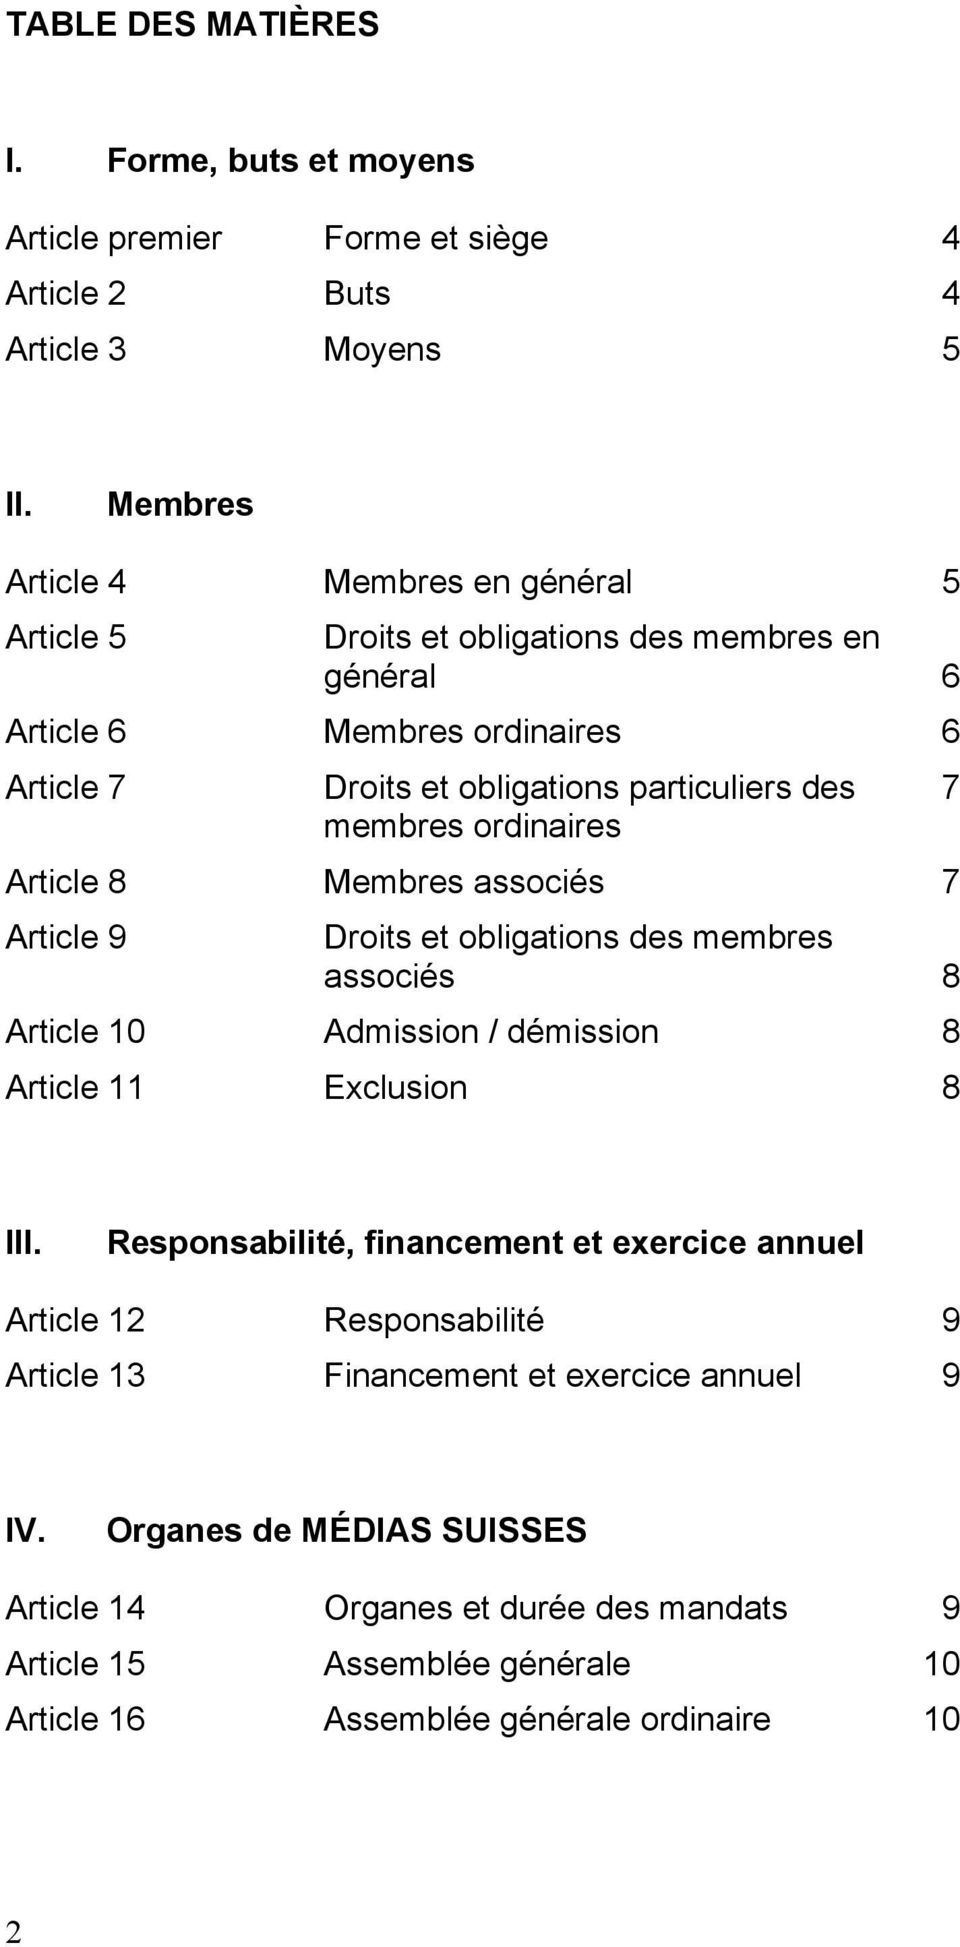 membres ordinaires Article 8 Membres associés 7 Article 9 Droits et obligations des membres associés 8 Article 10 Admission / démission 8 Article 11 Exclusion 8 III.